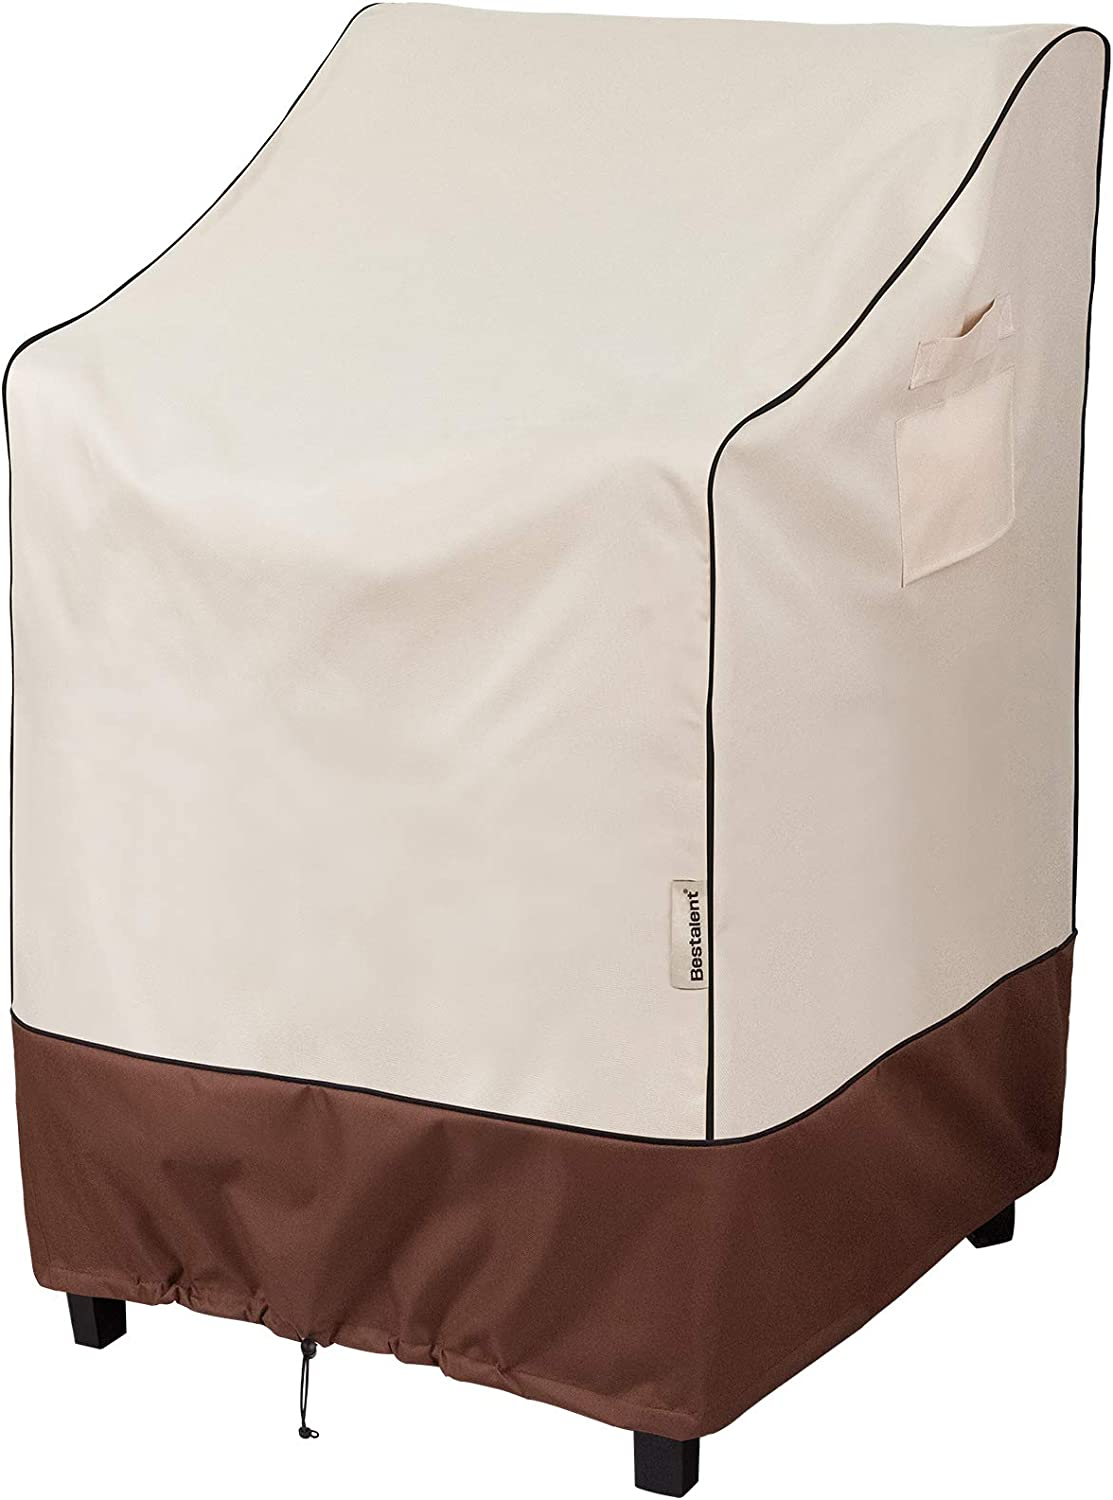 Bestalent Patio Chair Cover Stackable for Outdoor Lawn Furniture Dining Chairs Fits up to 36 W x 28 D x 47 H inches : Everything Else